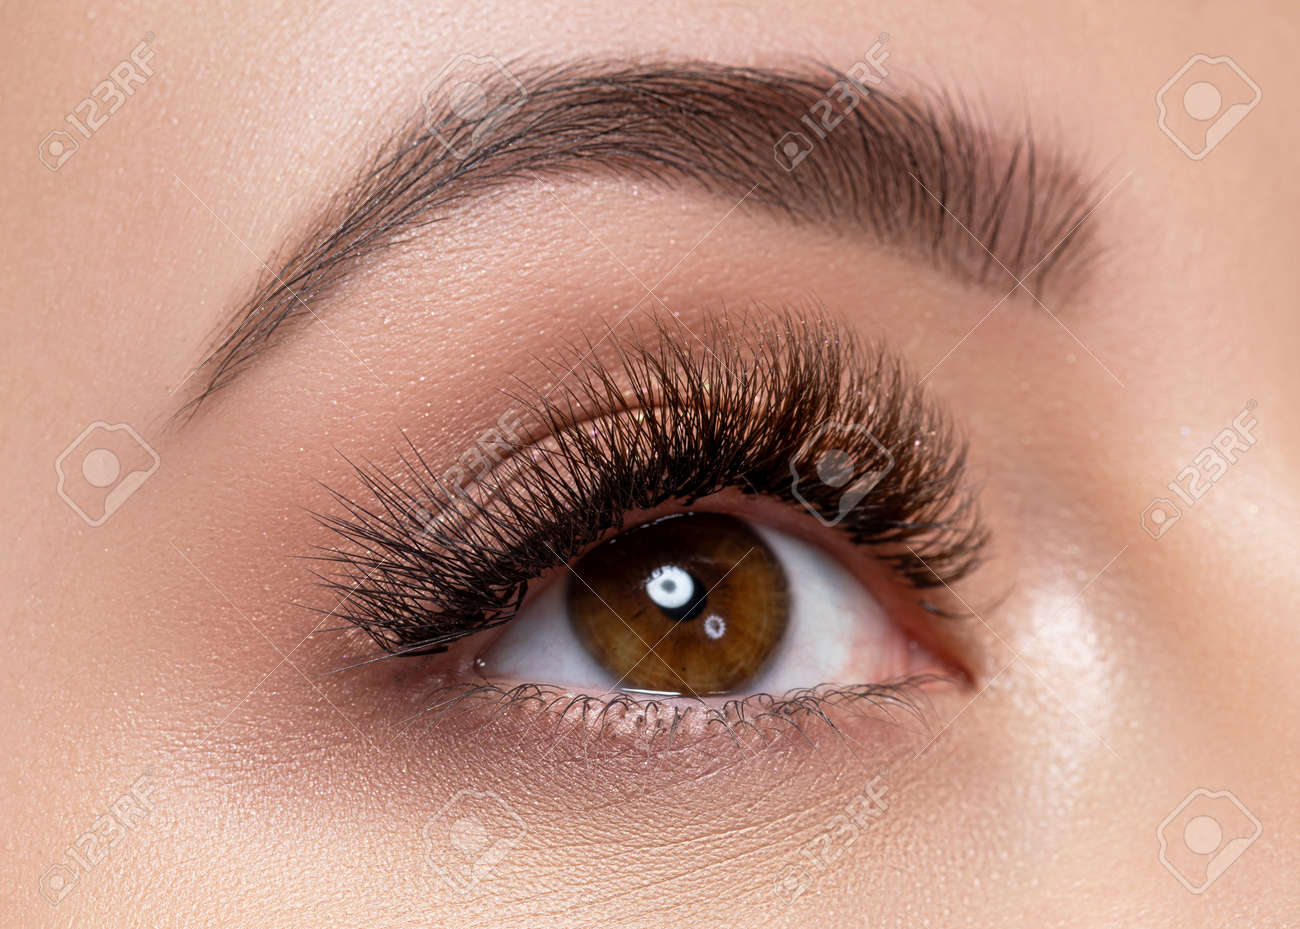 Beautiful macro photography of a woman's eye with extreme makeup of long lashes. Perfect long lashes, imitation. Rejection of cosmetics. Close-up fashion eye makeup, eyebrow lamination is beautiful - 145844000